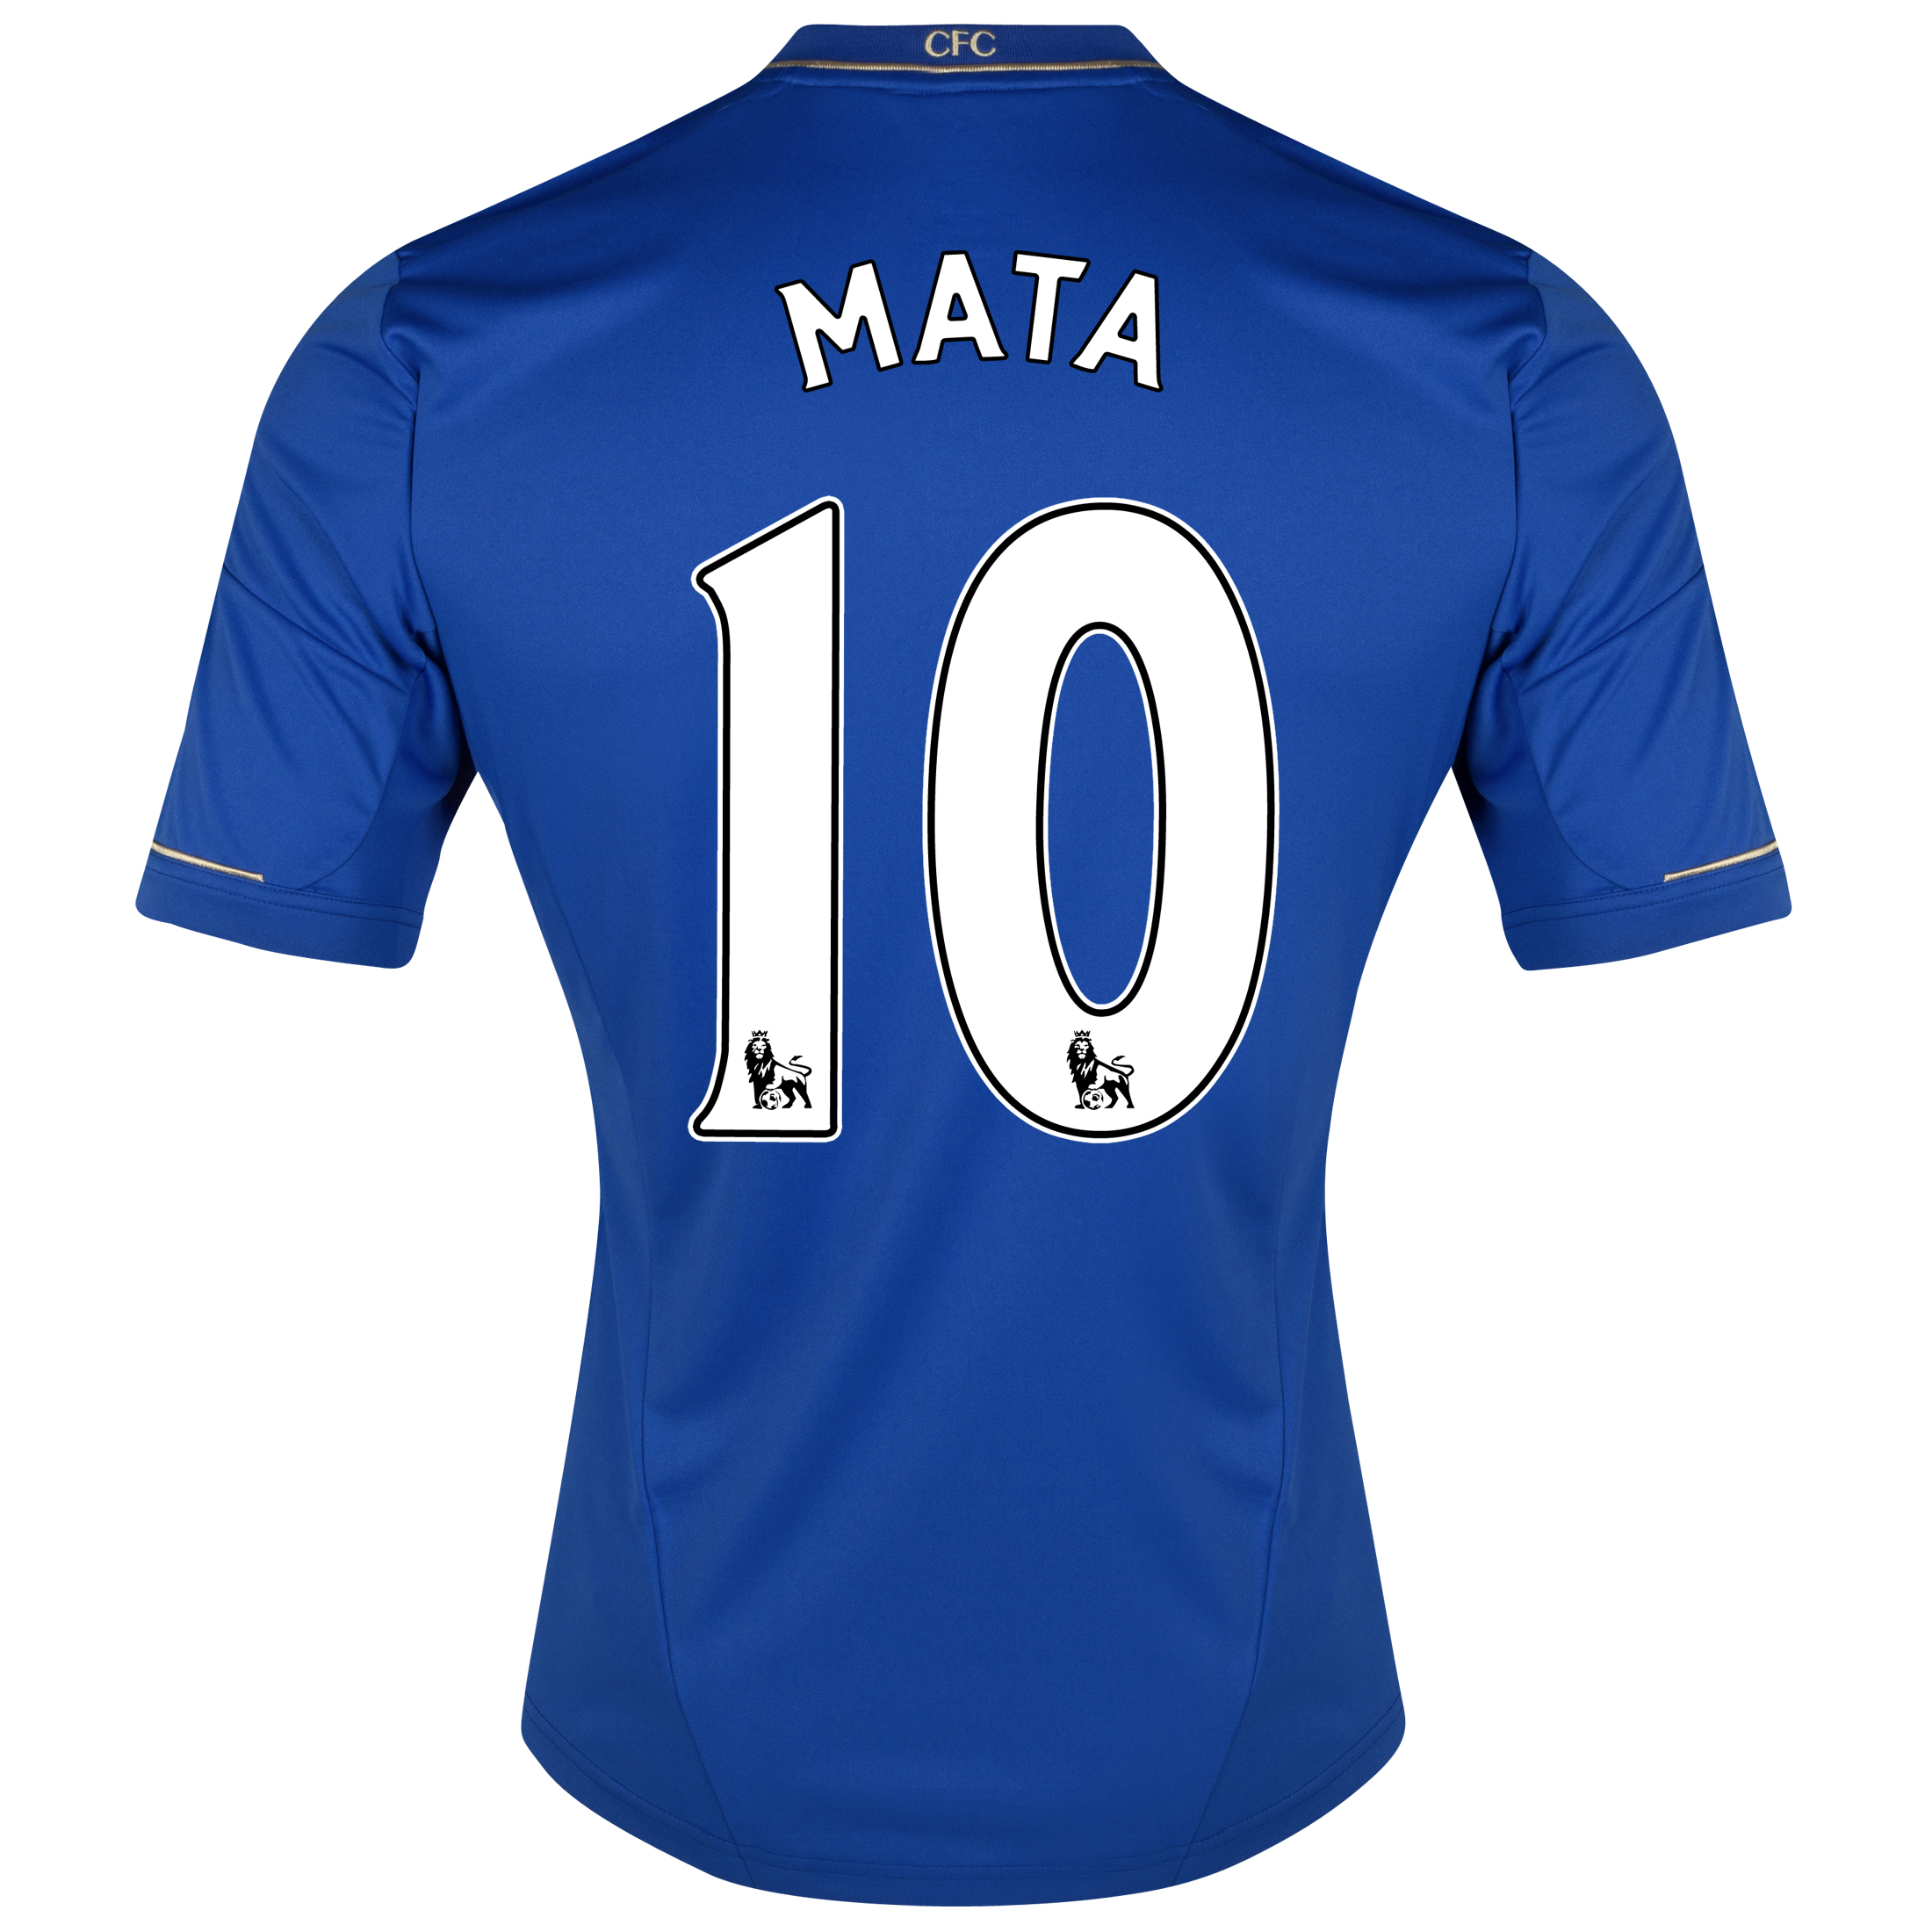 Chelsea Home Shirt 2012/13 - Youths with Mata 10 printing